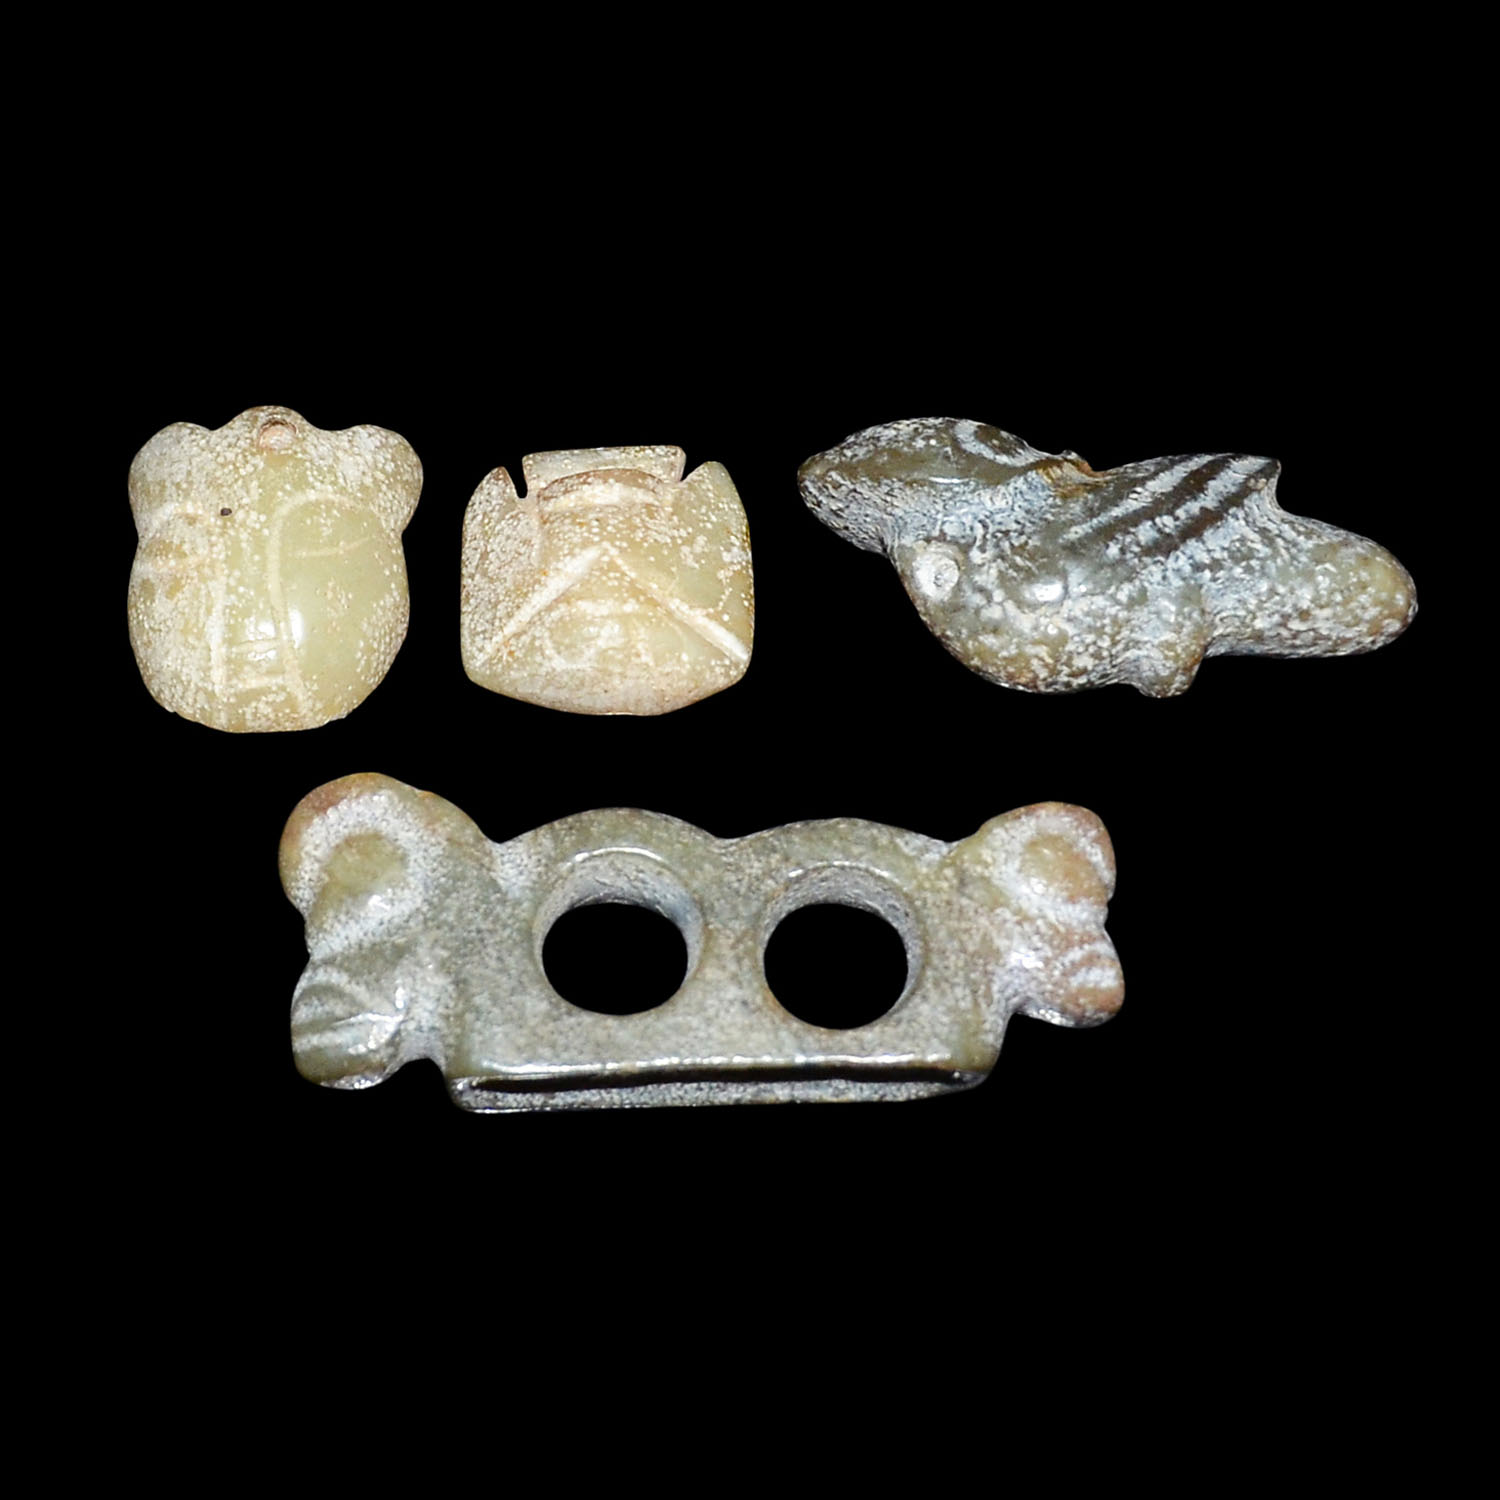 Lot 22 - 紅山文化玉雕人、鳥、獸紋一組四件 A Group of Four Neolithic Hongshan Culture Jade Carved Ornaments  Total Weight: 108